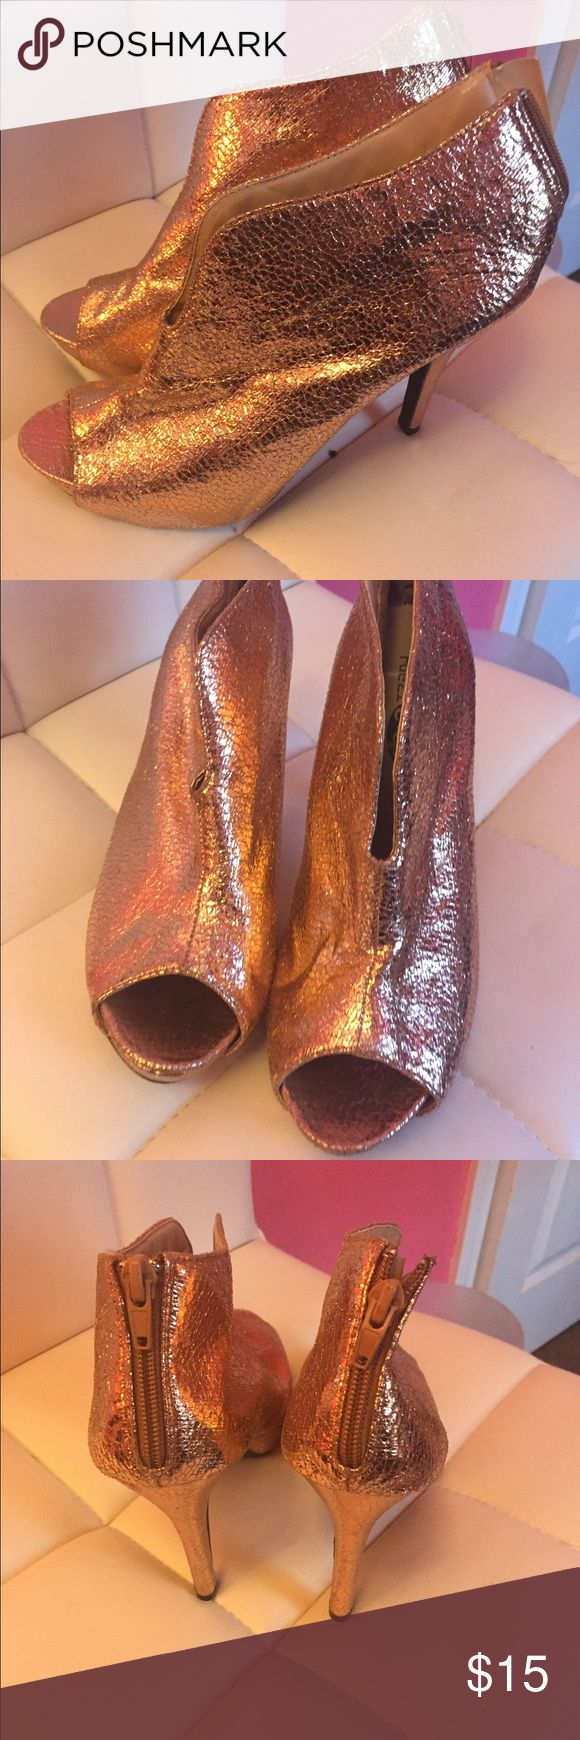 Rose gold metallic open toe booties can fit 8.5 Never worn perfect for New Years! This will be dropped at post office same day or nite of purchase. Shoes Ankle Boots & Booties